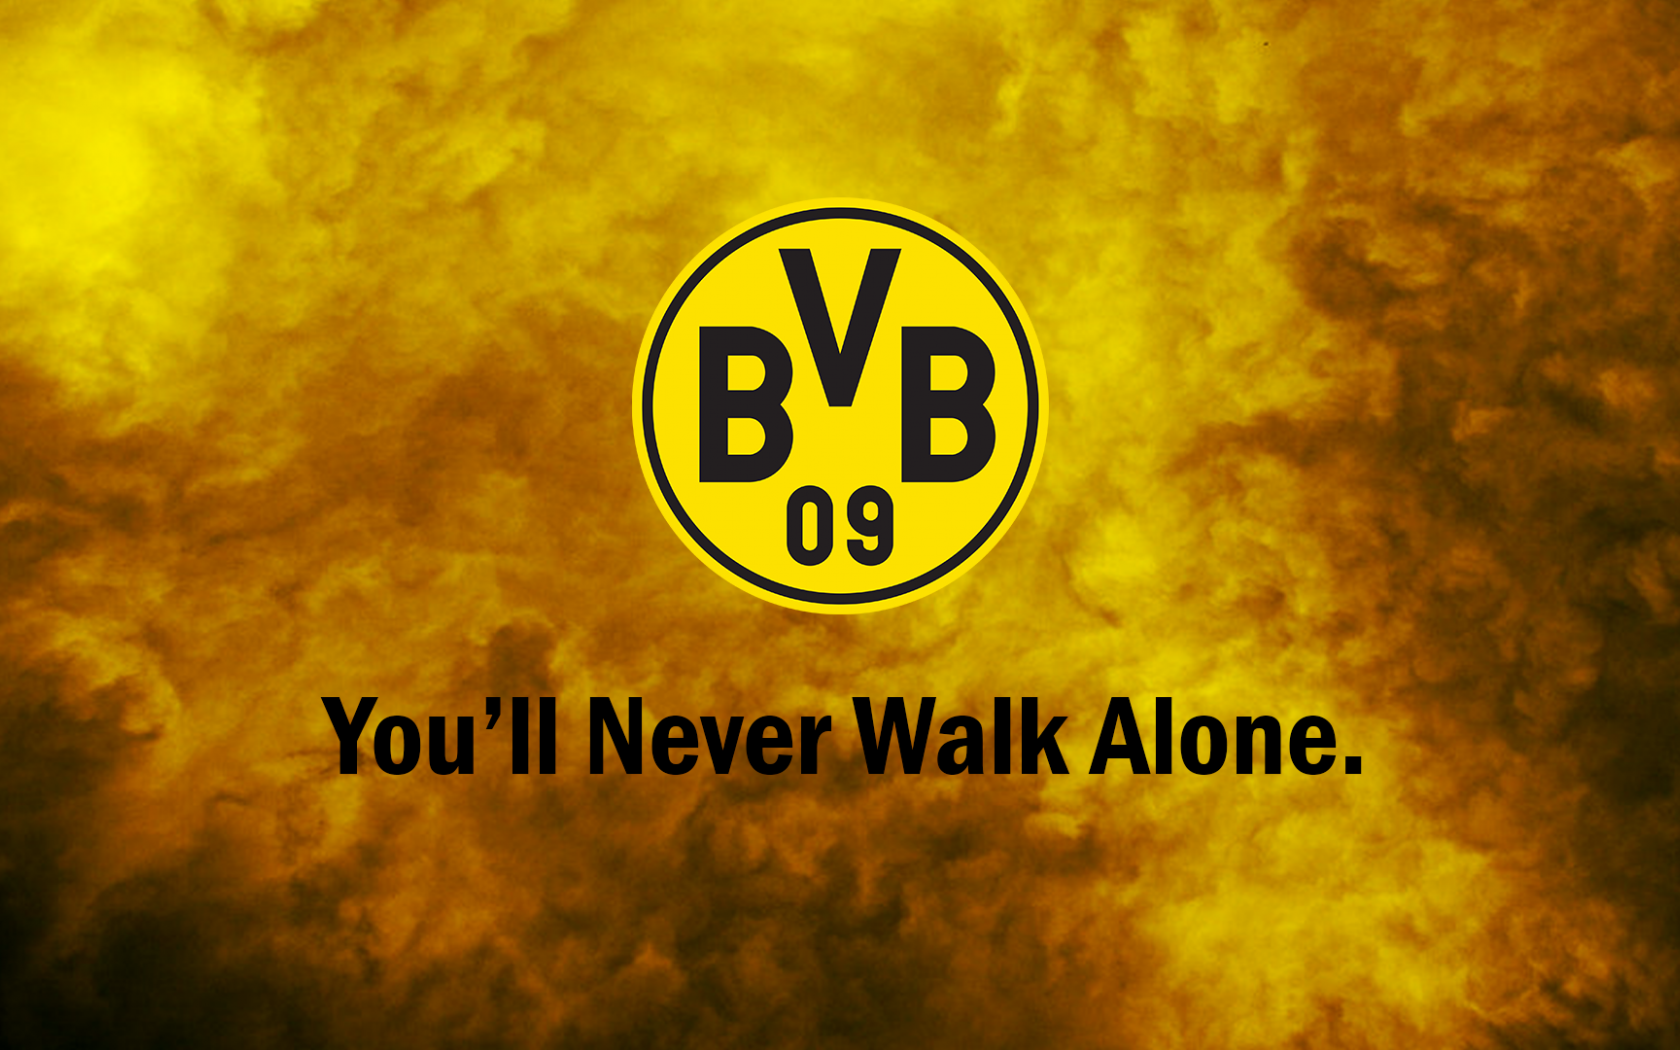 Free Download Borussia Dortmund Bvb Youll Never Walk Alone By